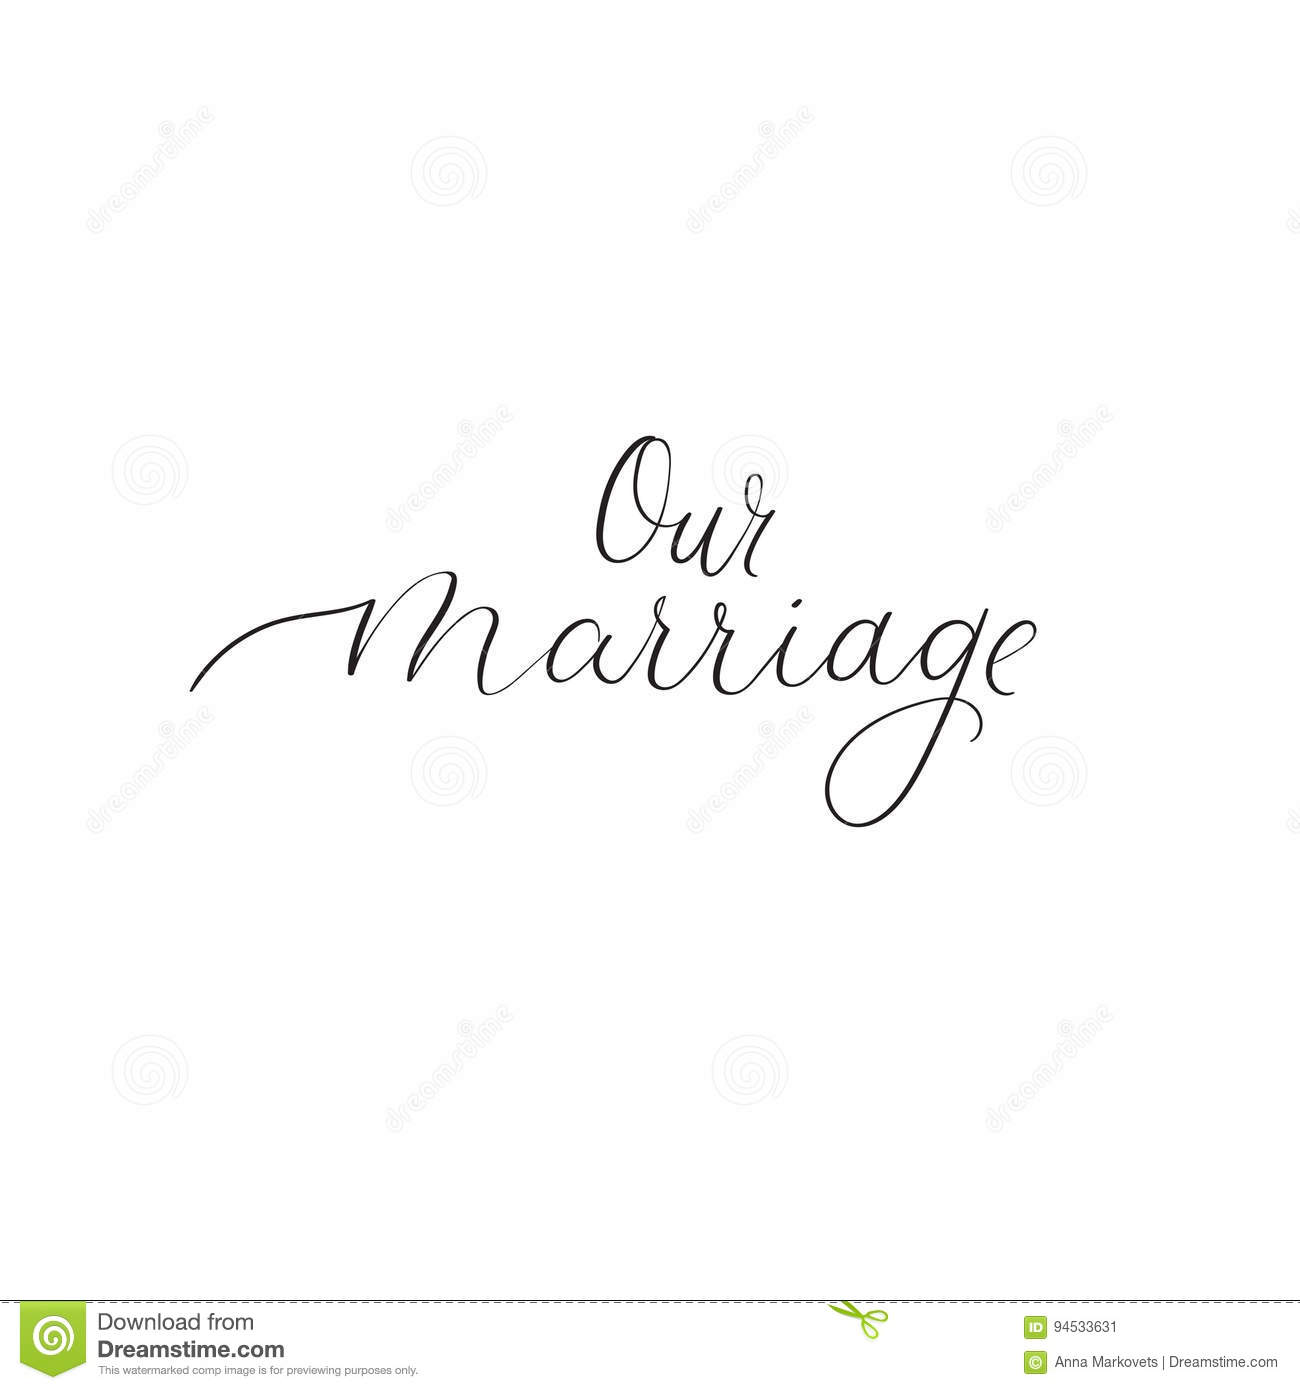 Our Marriage Hand Lettering For Wedding Design Handwritten Modern